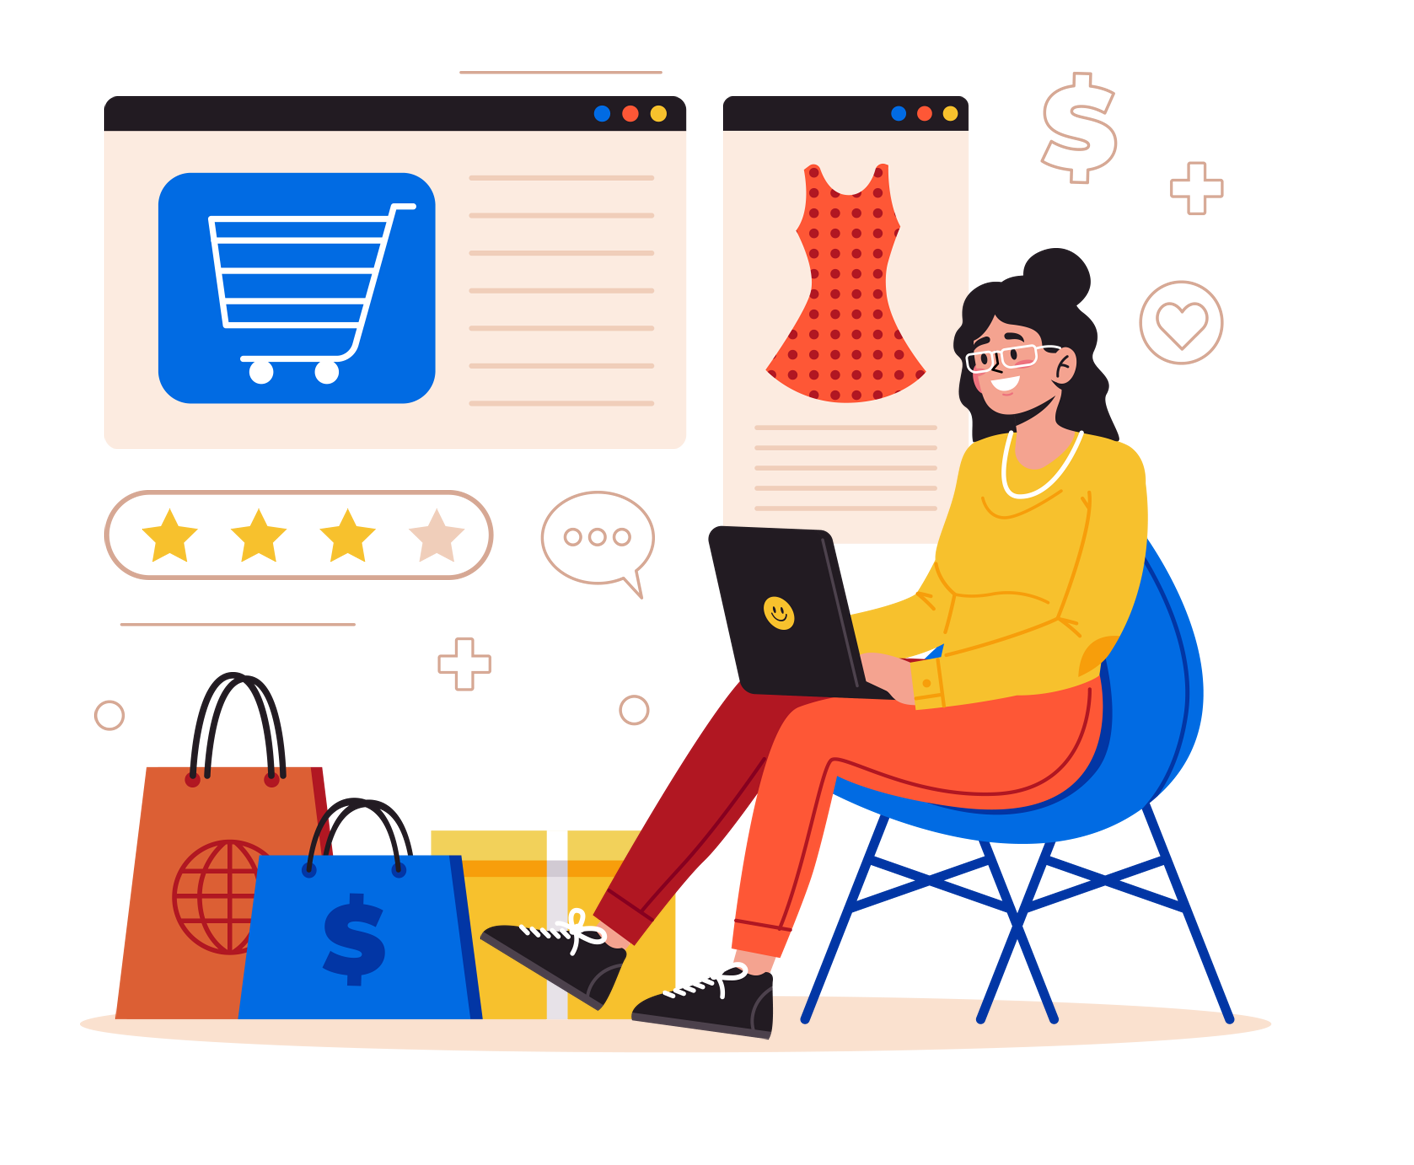 ecommerce elements image